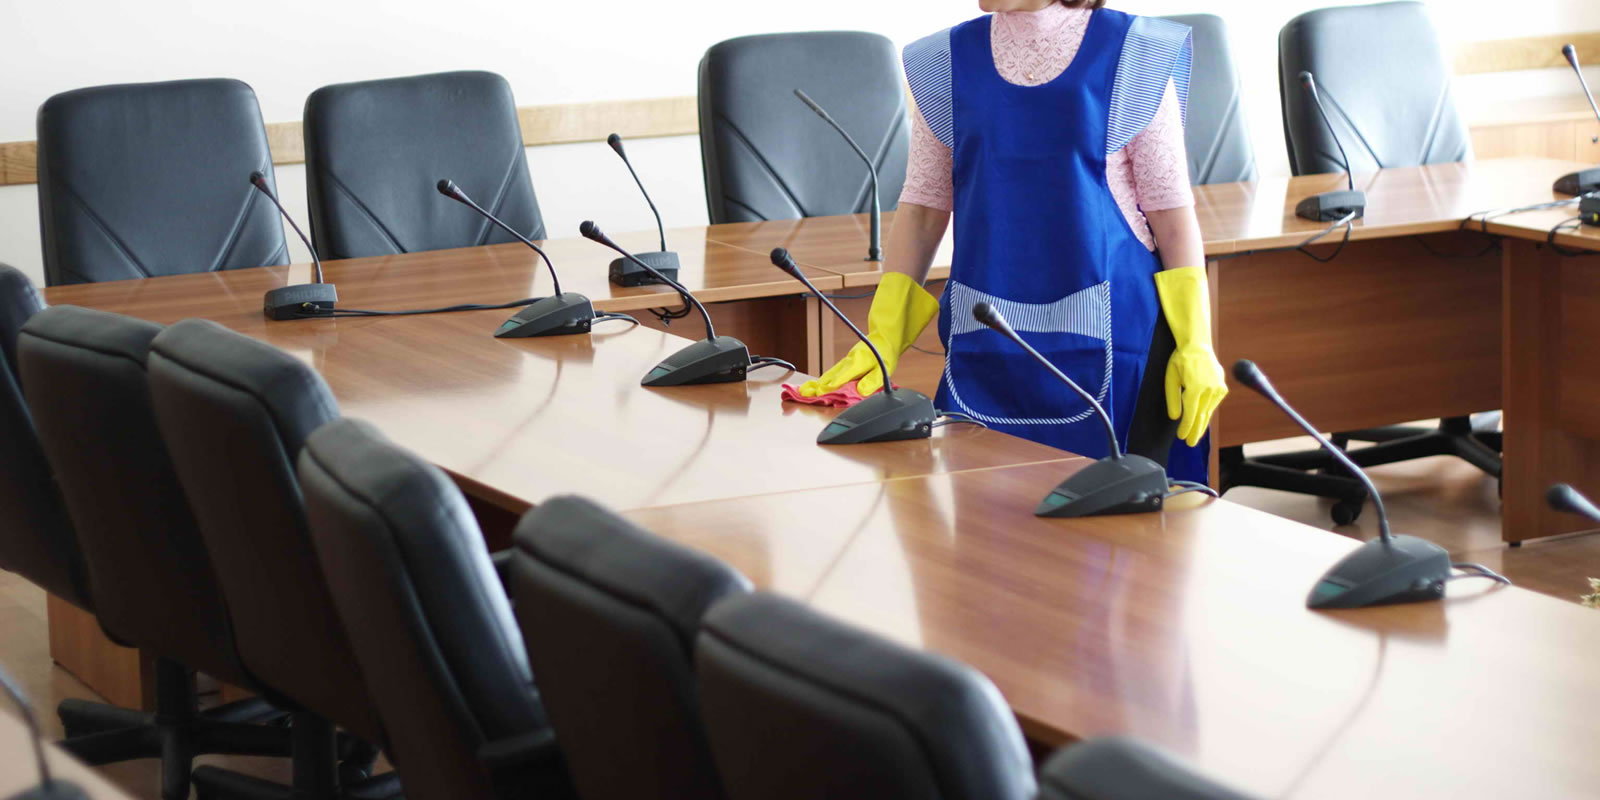 Commercial Cleaners in Guildford & Portsmouth